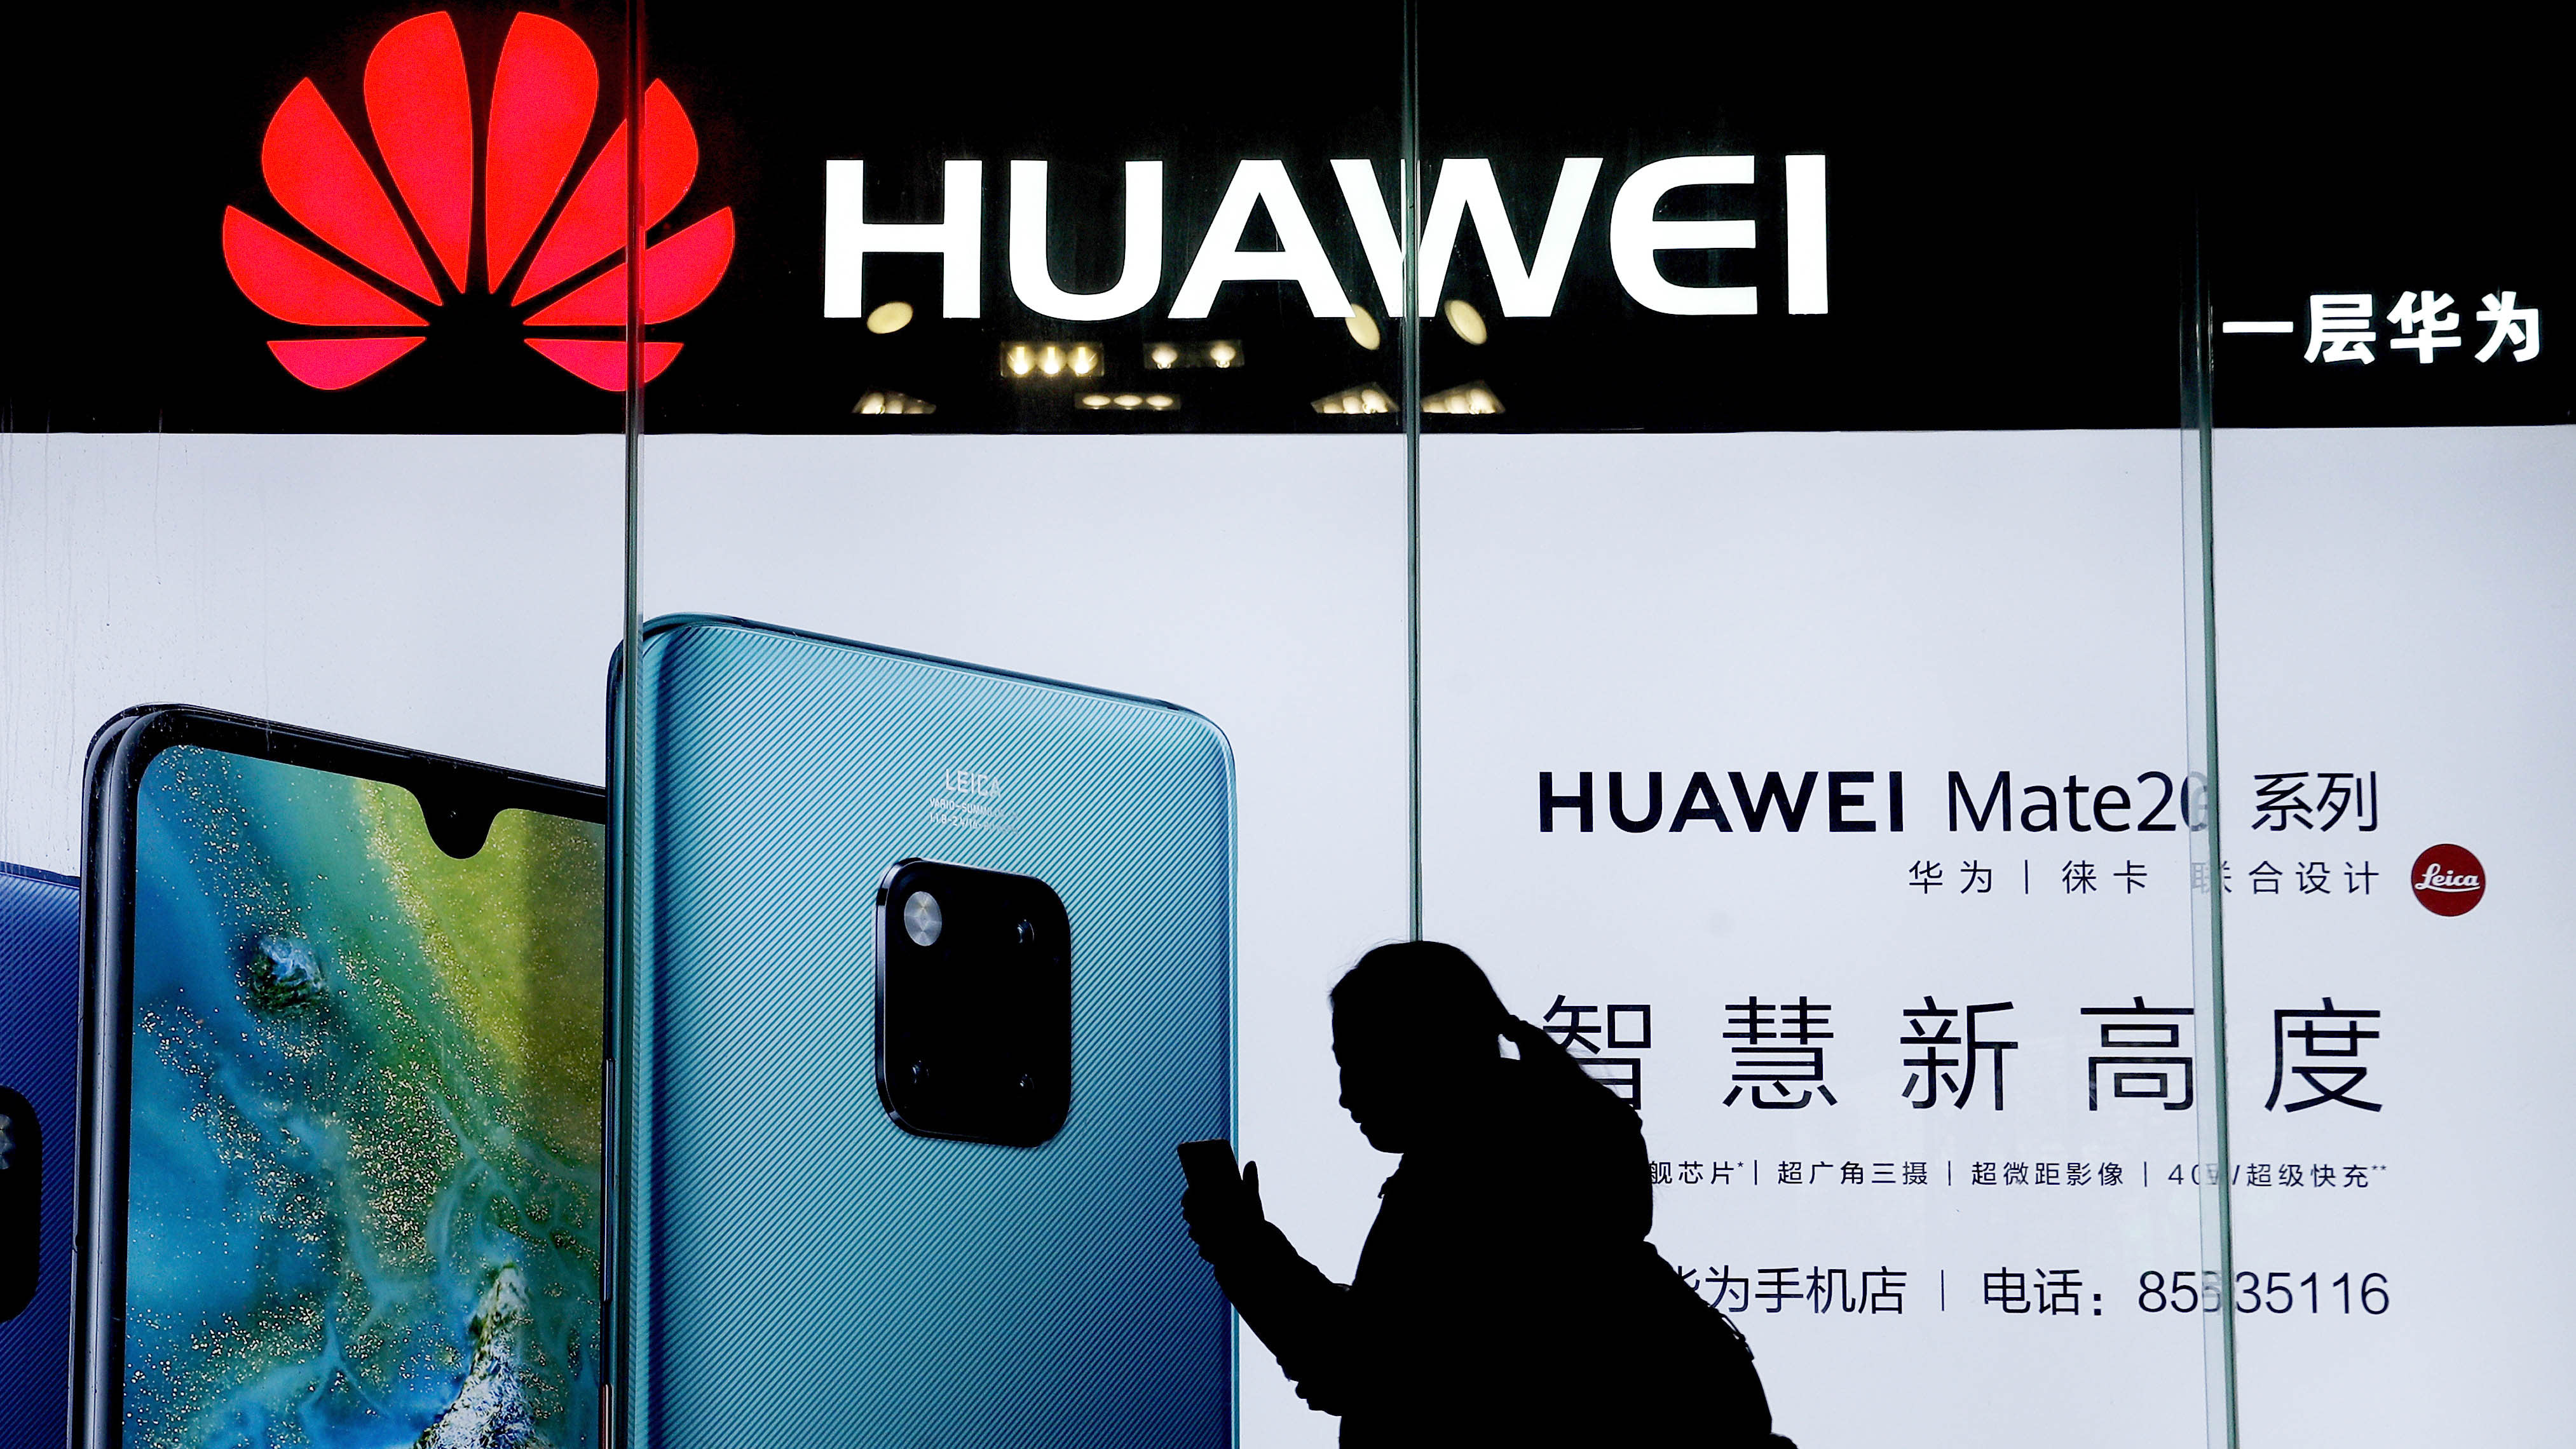 In the 31 years since its founding, Huawei has grown to become the world's largest telecommunications equipment provider. (Photo courtesy of Huawei)